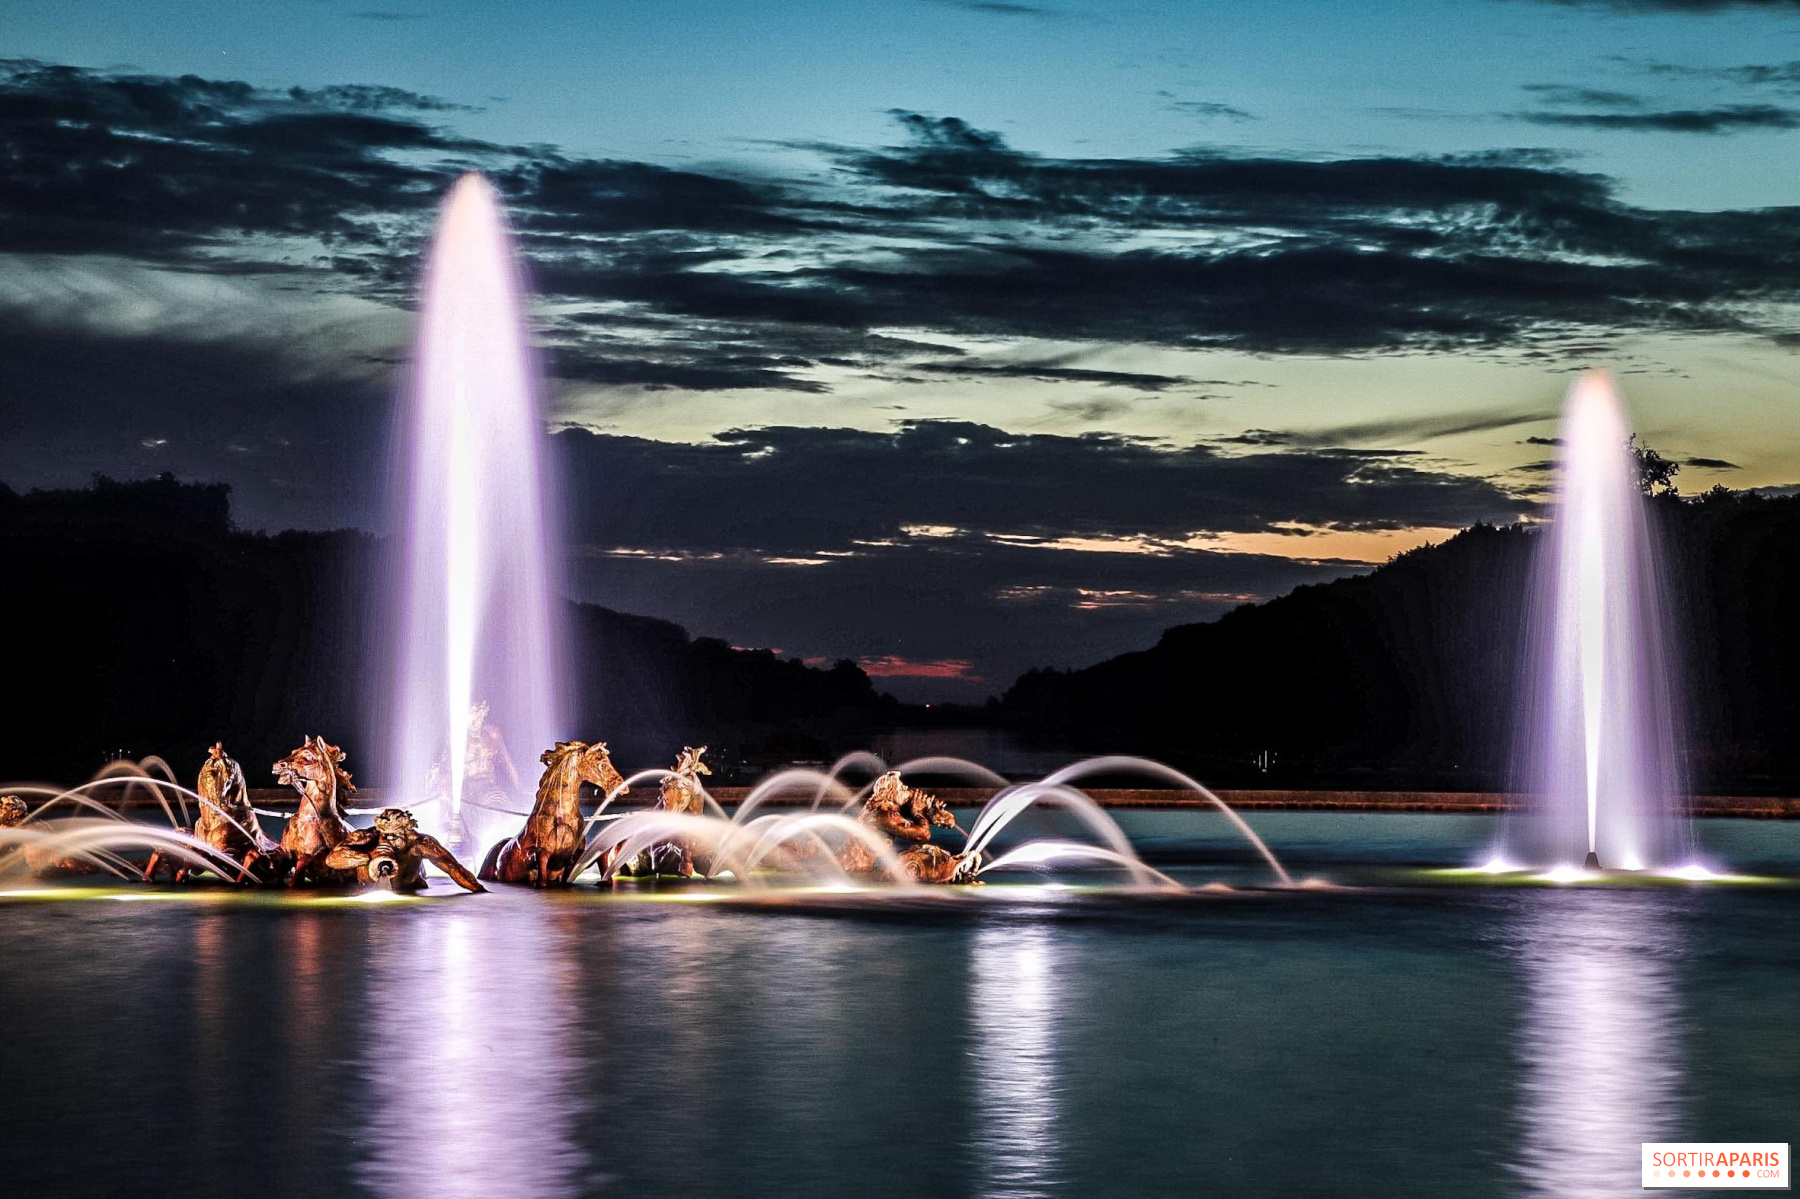 Versailes Christmas Market 2020 Night Fountains Shows 2020 at the Palace of Versailles